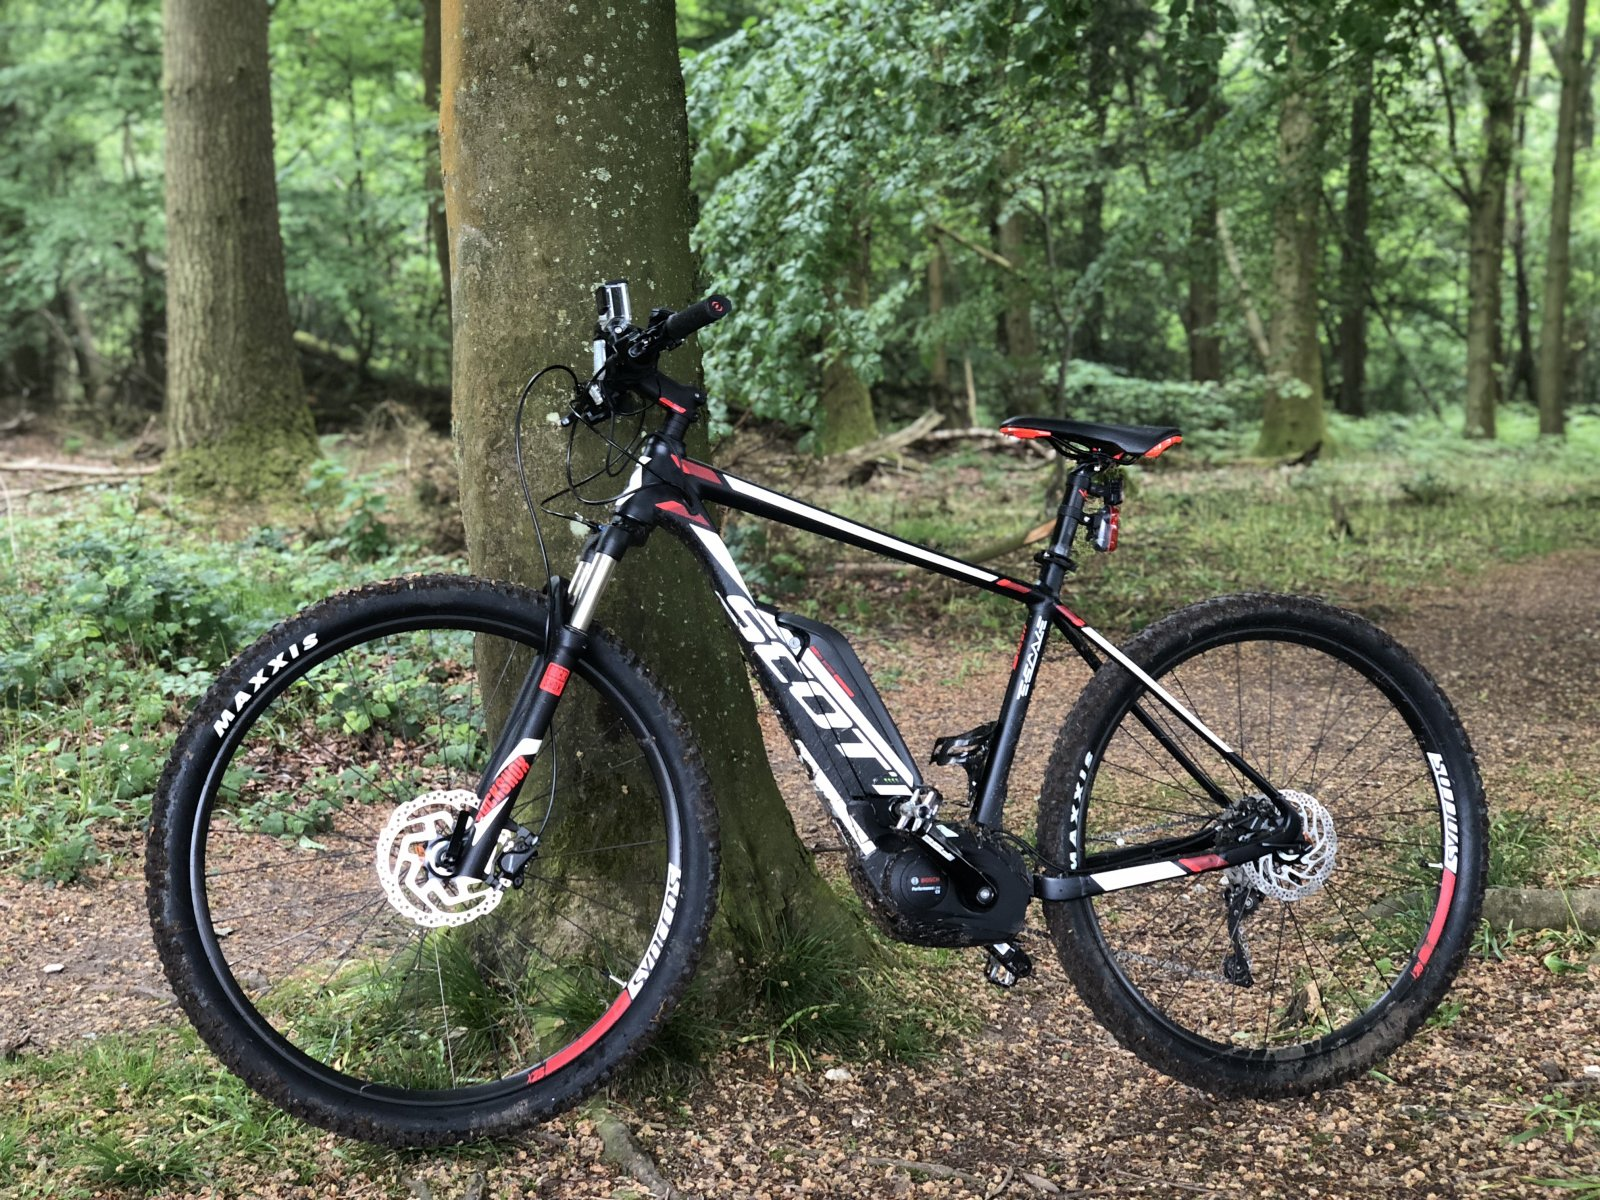 6720da89e02 Manufacturer: Scott Model: Scott E-Scale 920 Electric Hardtail Mountain  Bike Black - Includes Bosch Performance CX 250w With 500wh Battery